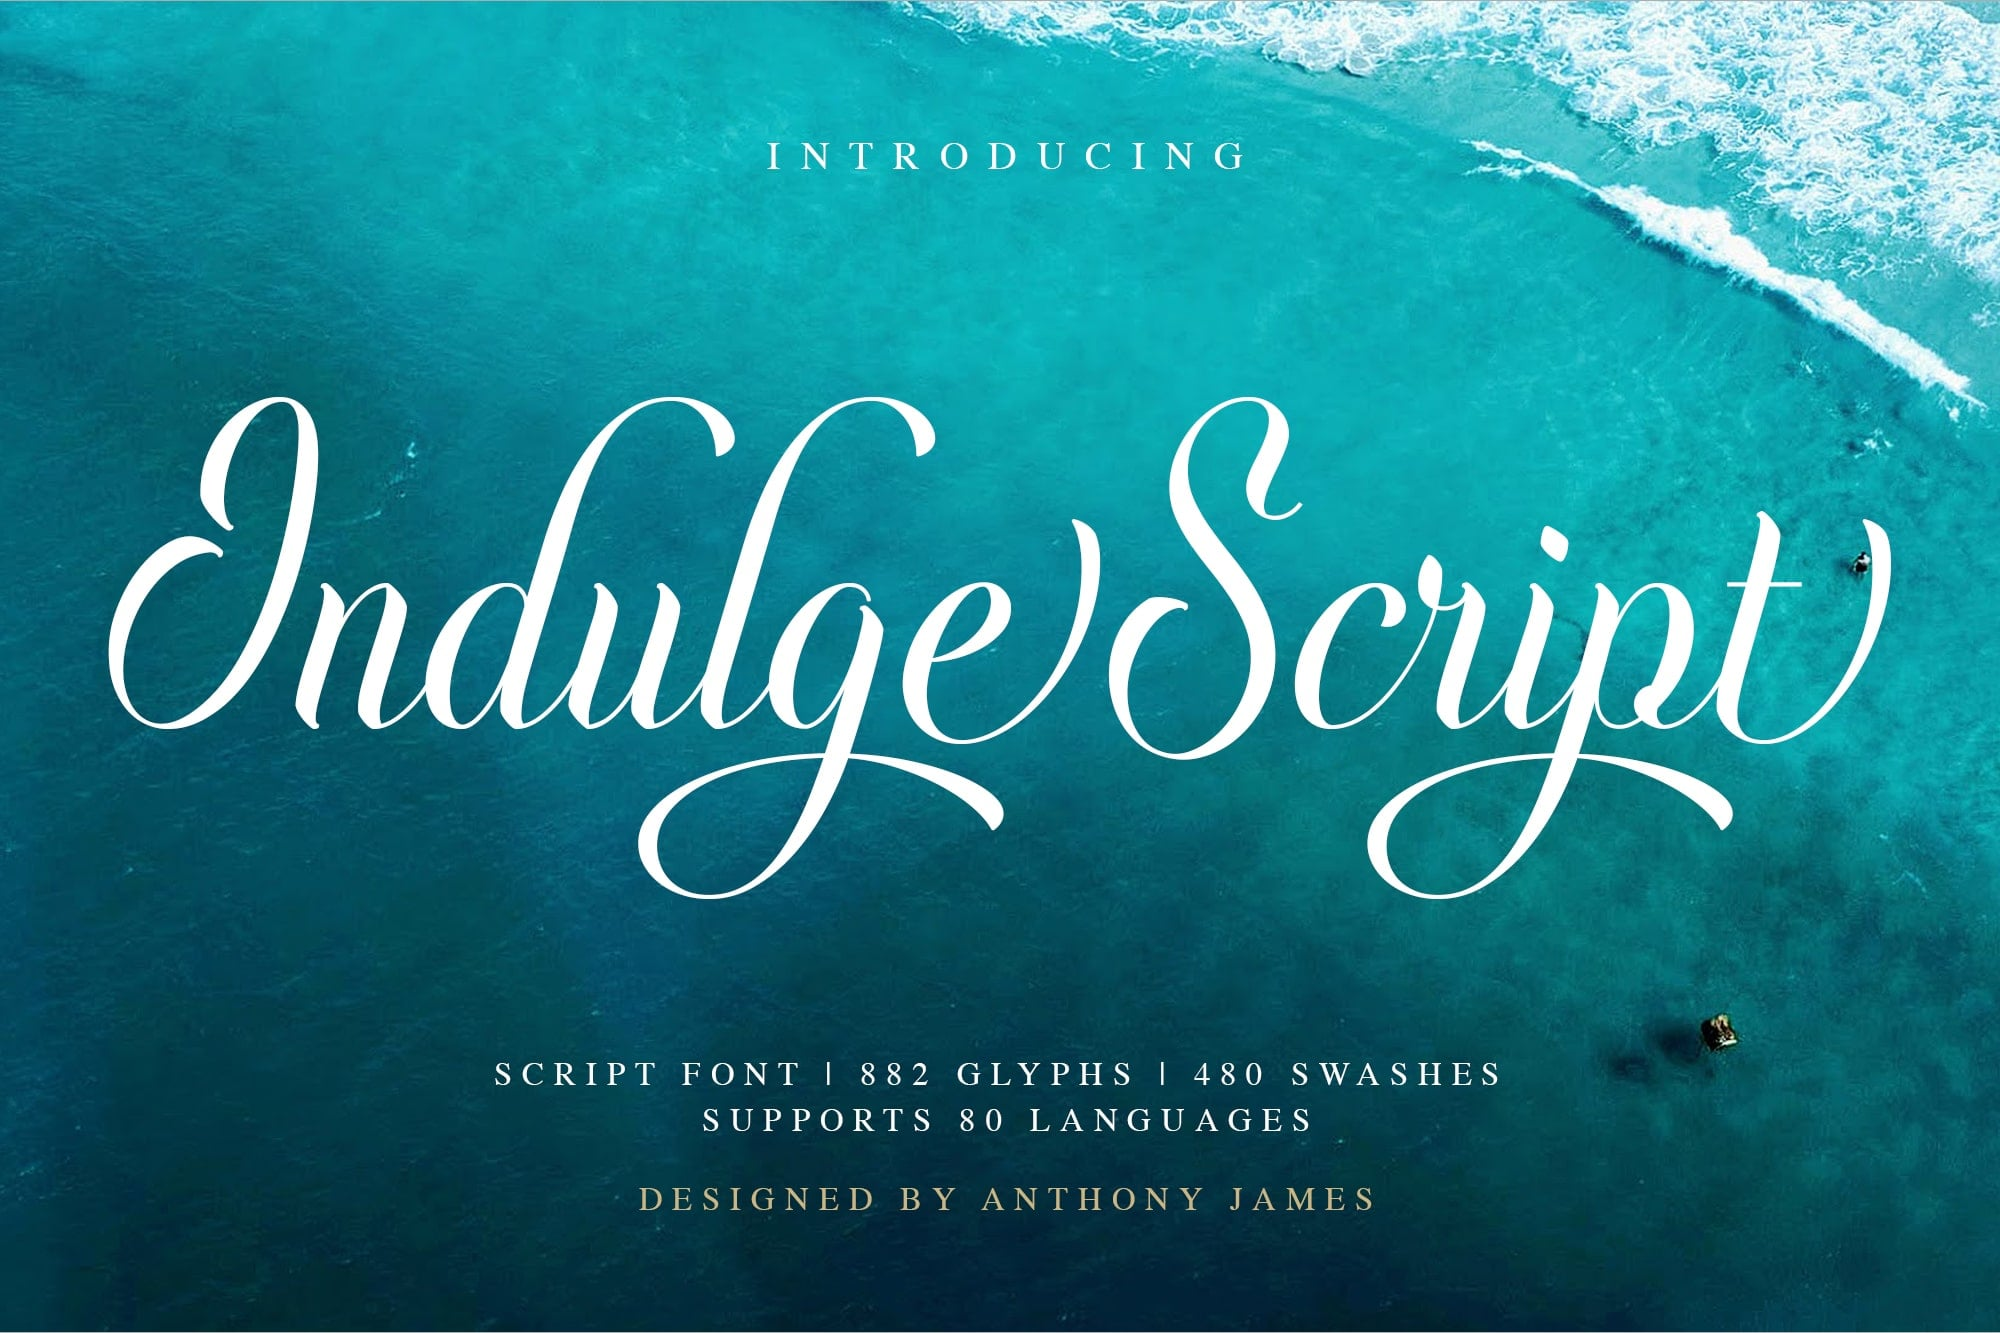 20 Best Psychedelic Fonts for Printing, Websites, Logos and Applications - Indulge Script 1 min